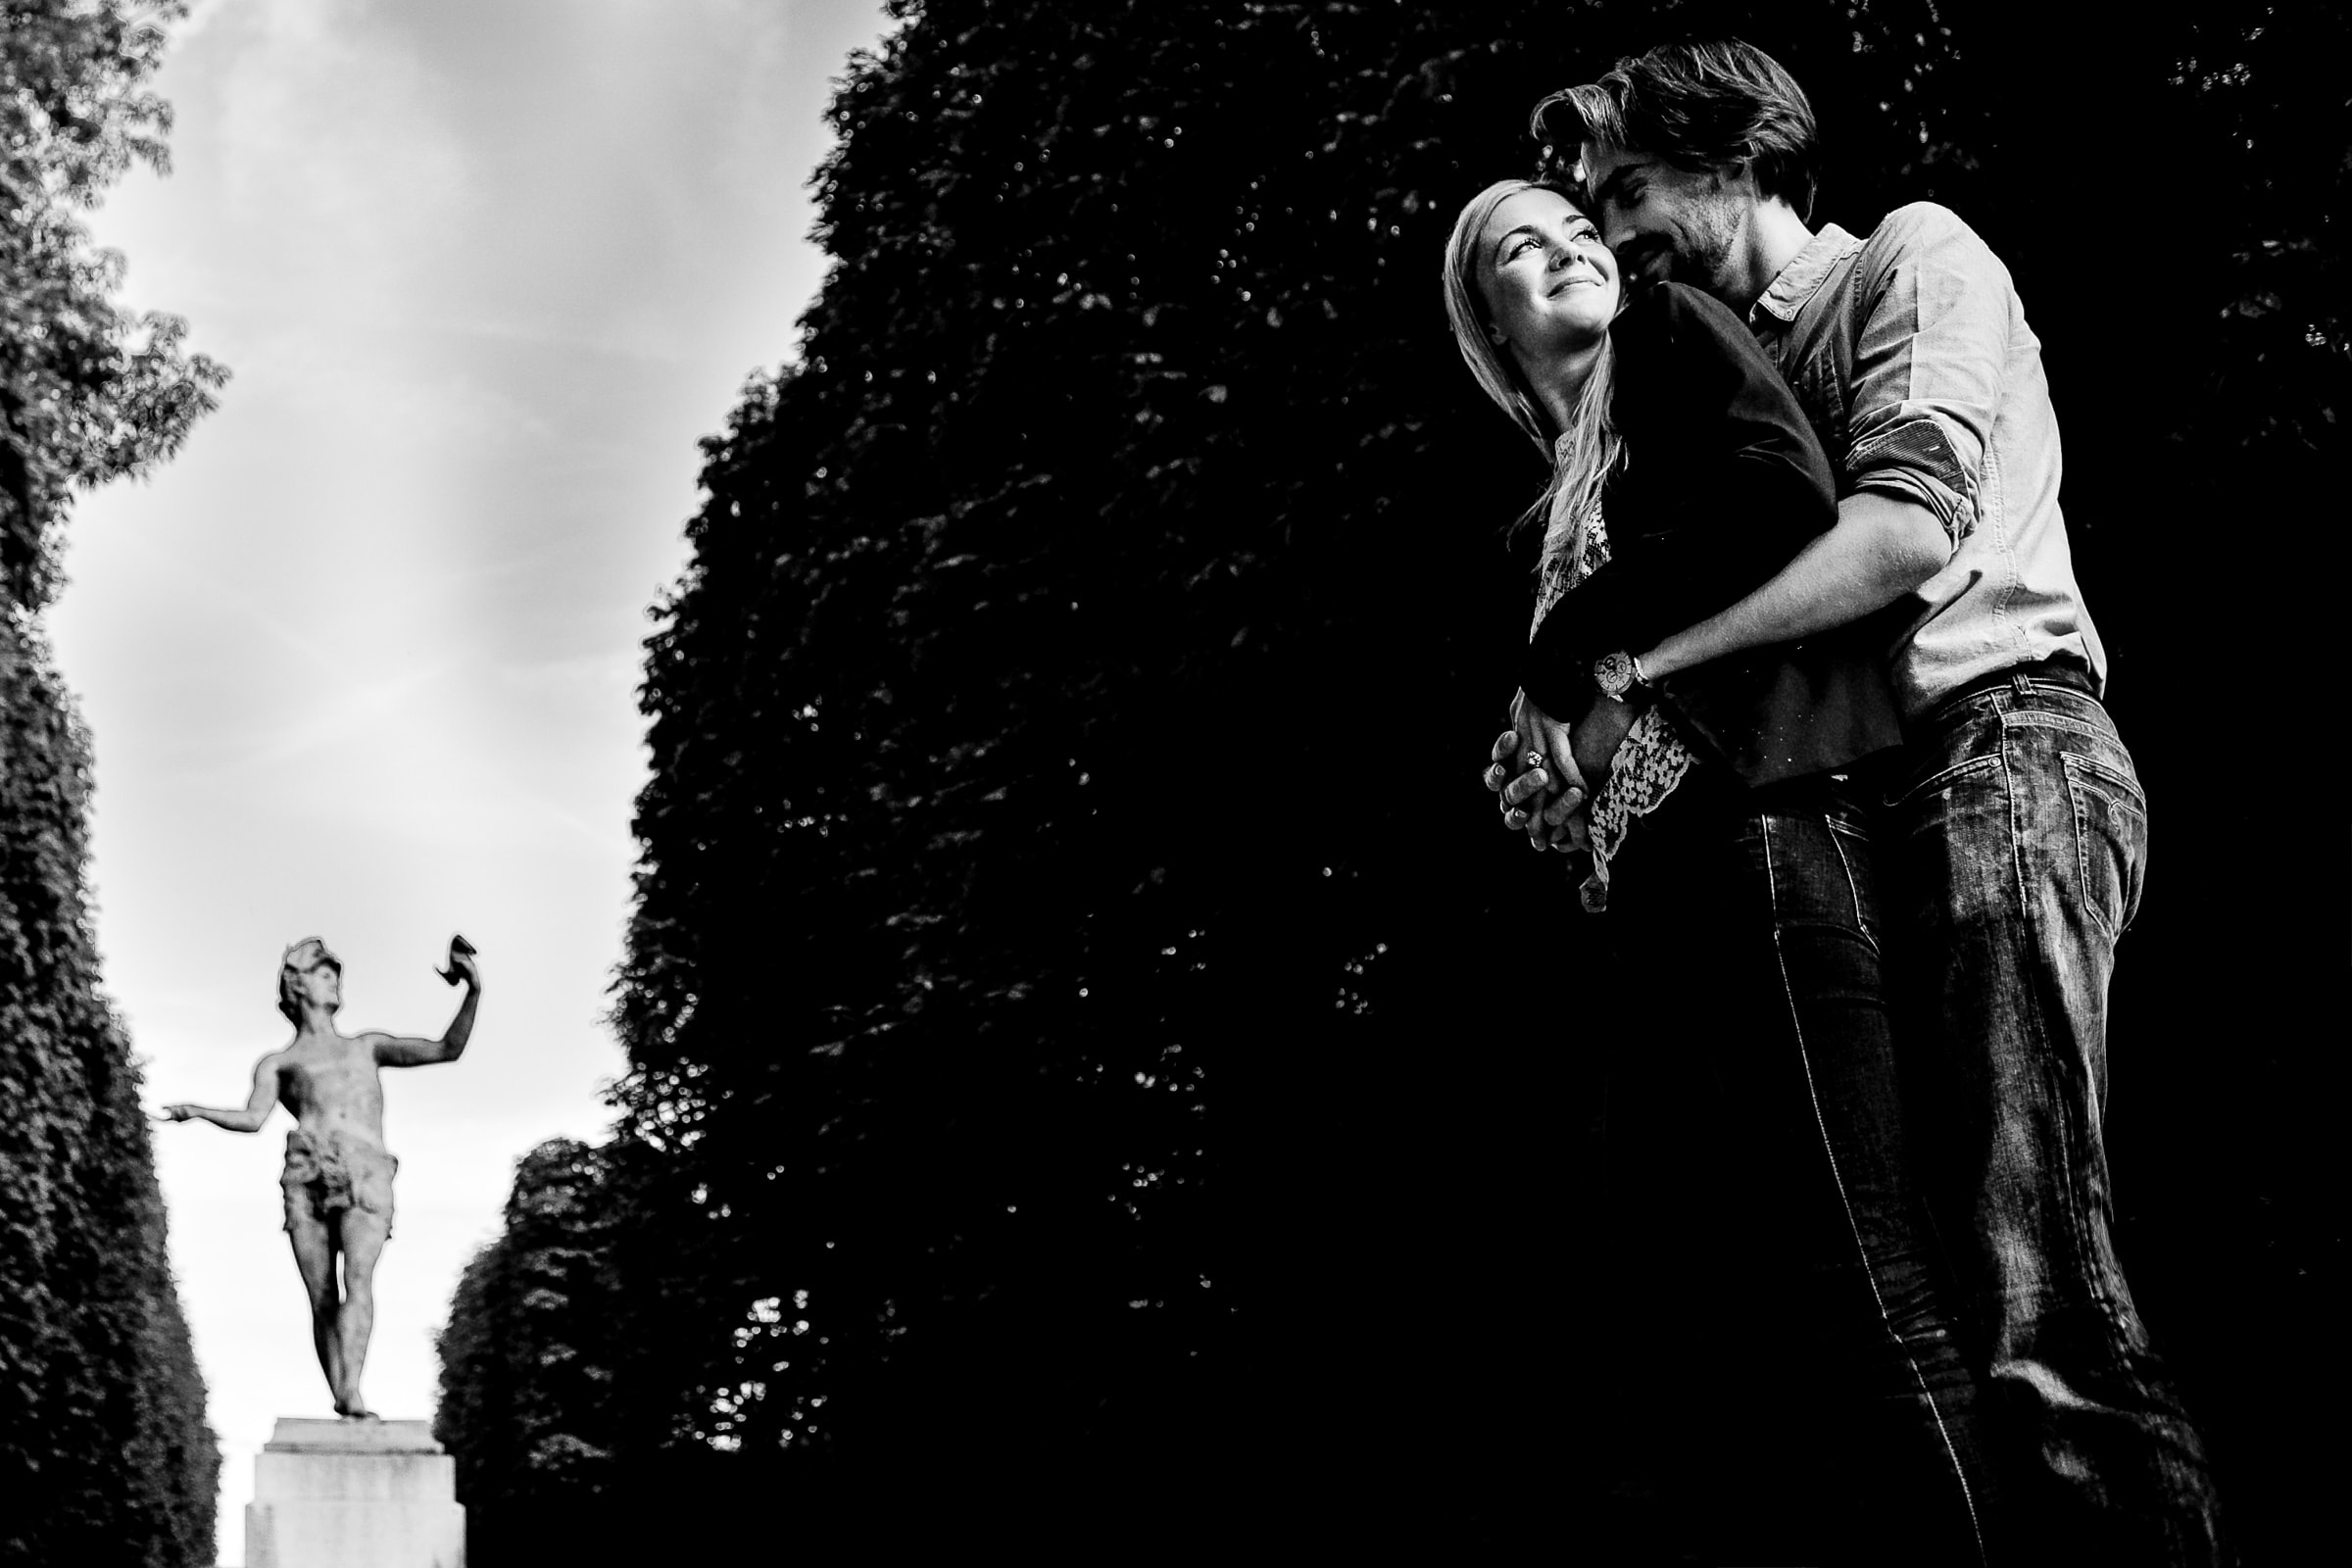 A peaceful moment of connection during Faye and David's Montmartre Paris Engagement date in the Luxembourg Gardens near a historic statue